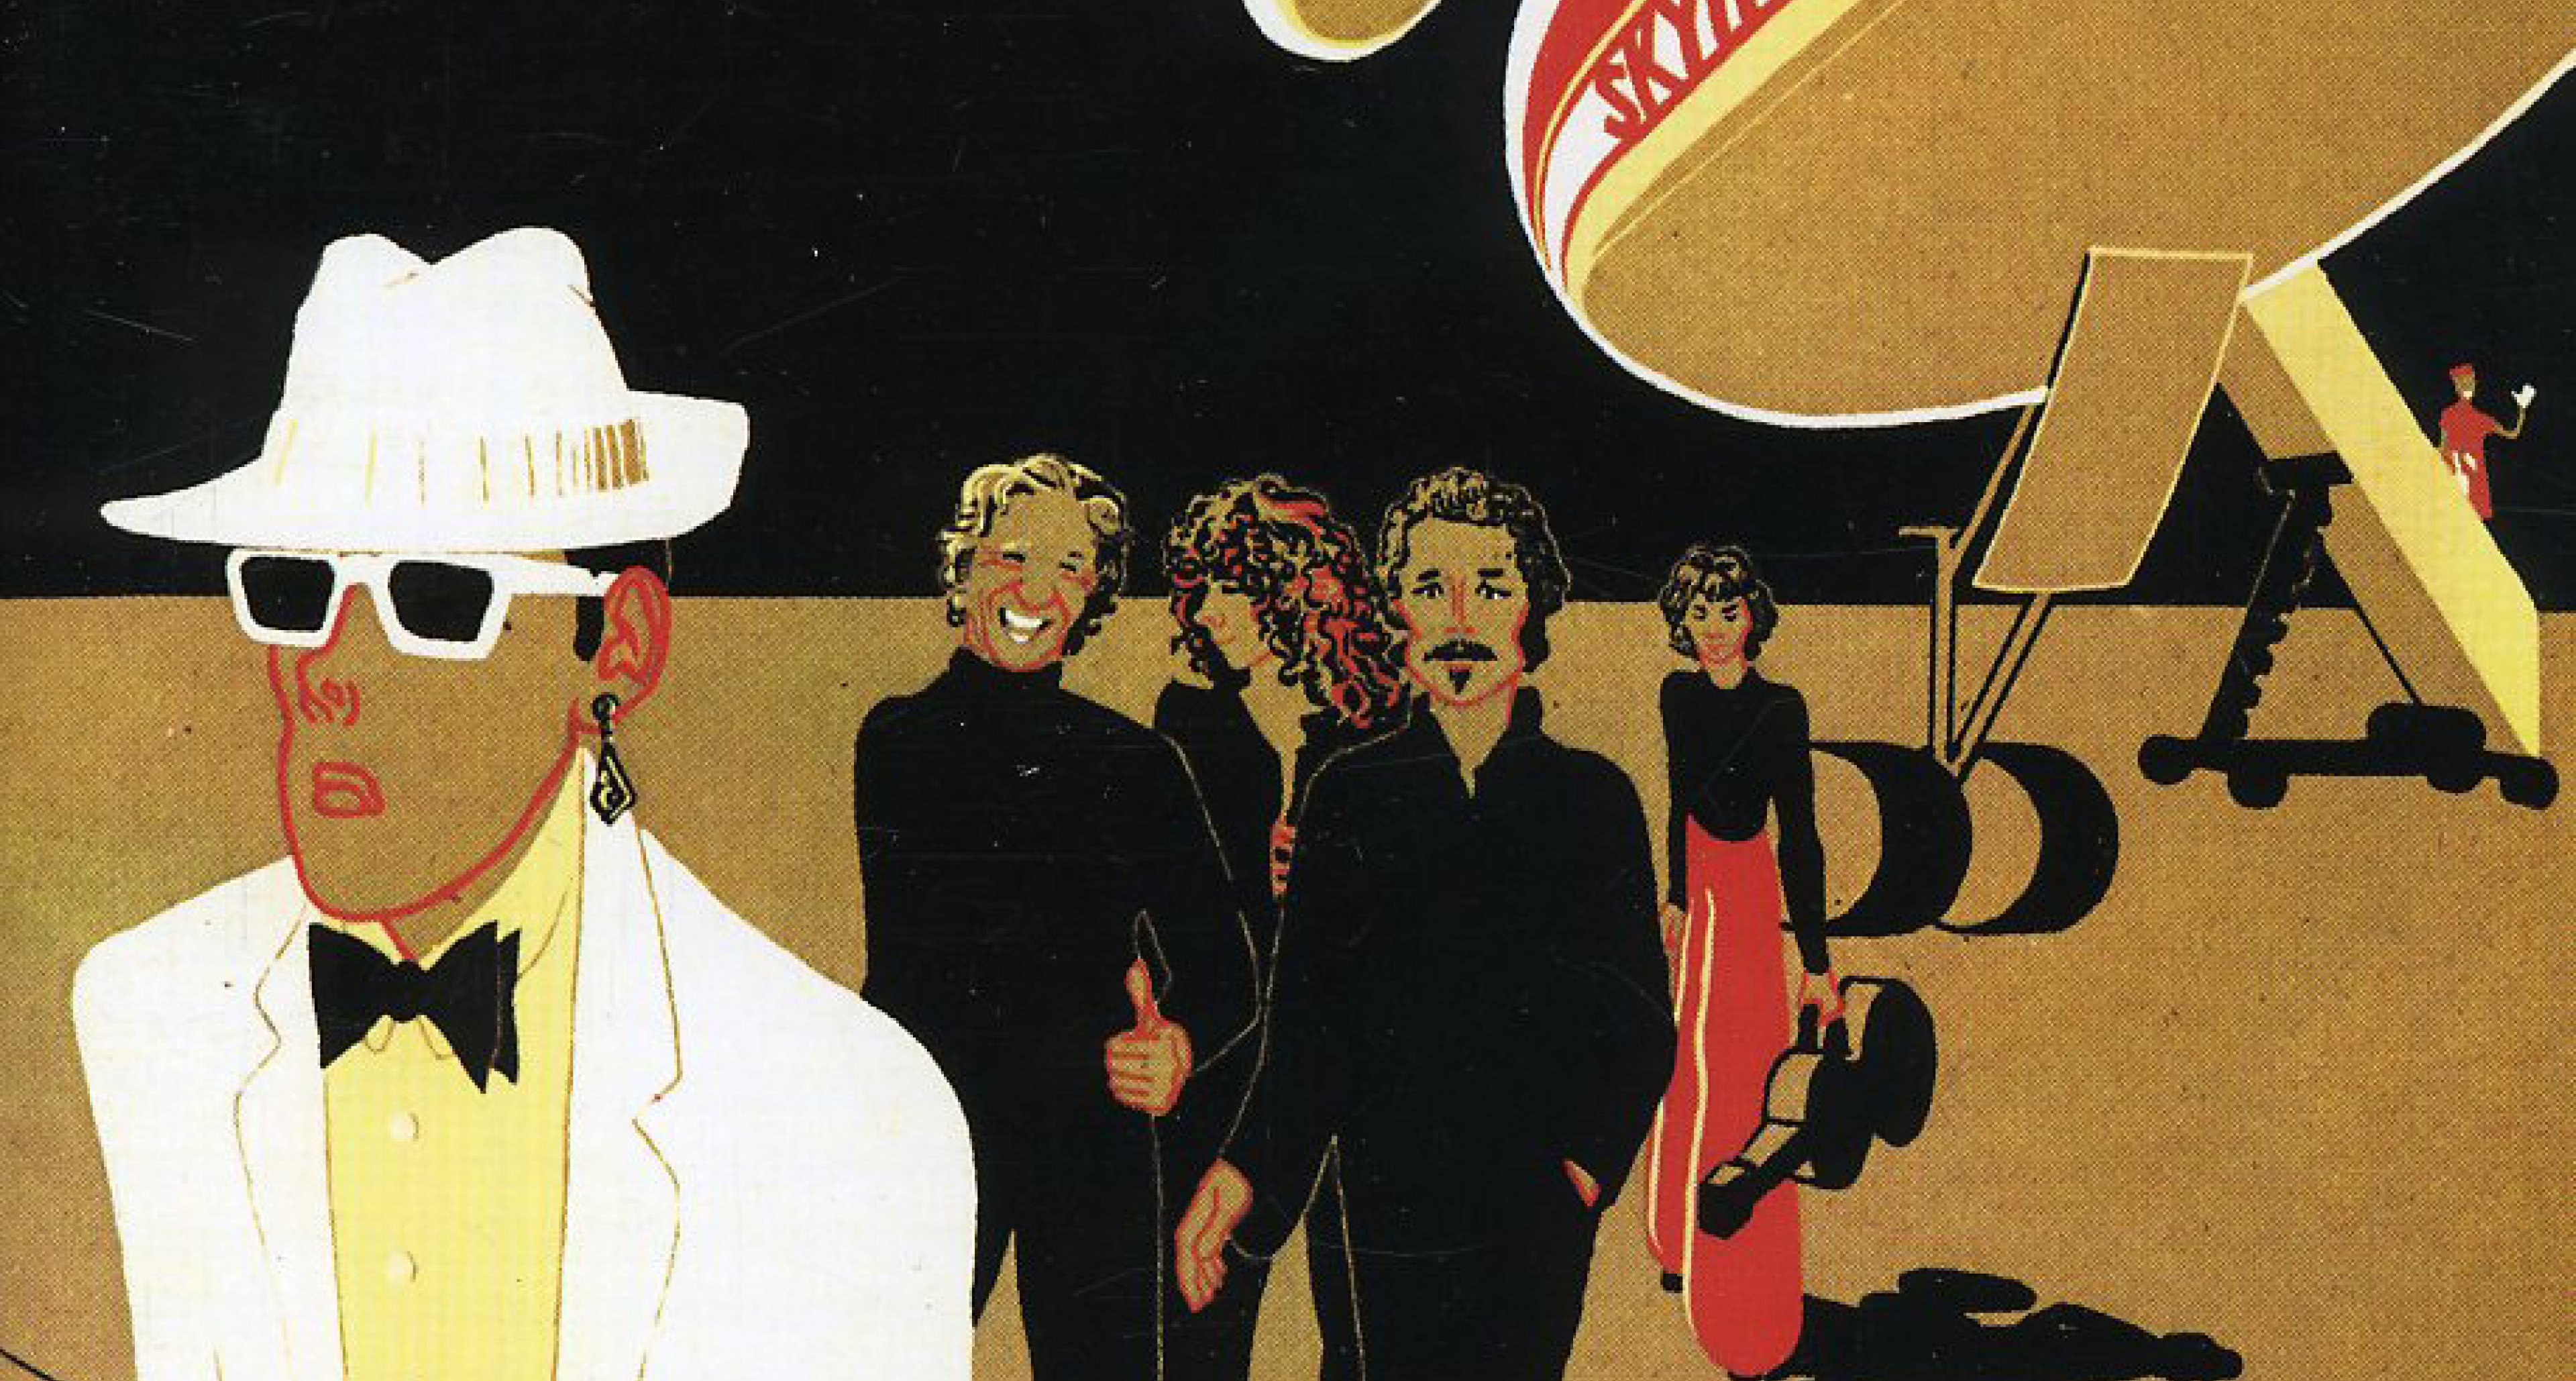 Living In The 70s, by Skyhooks